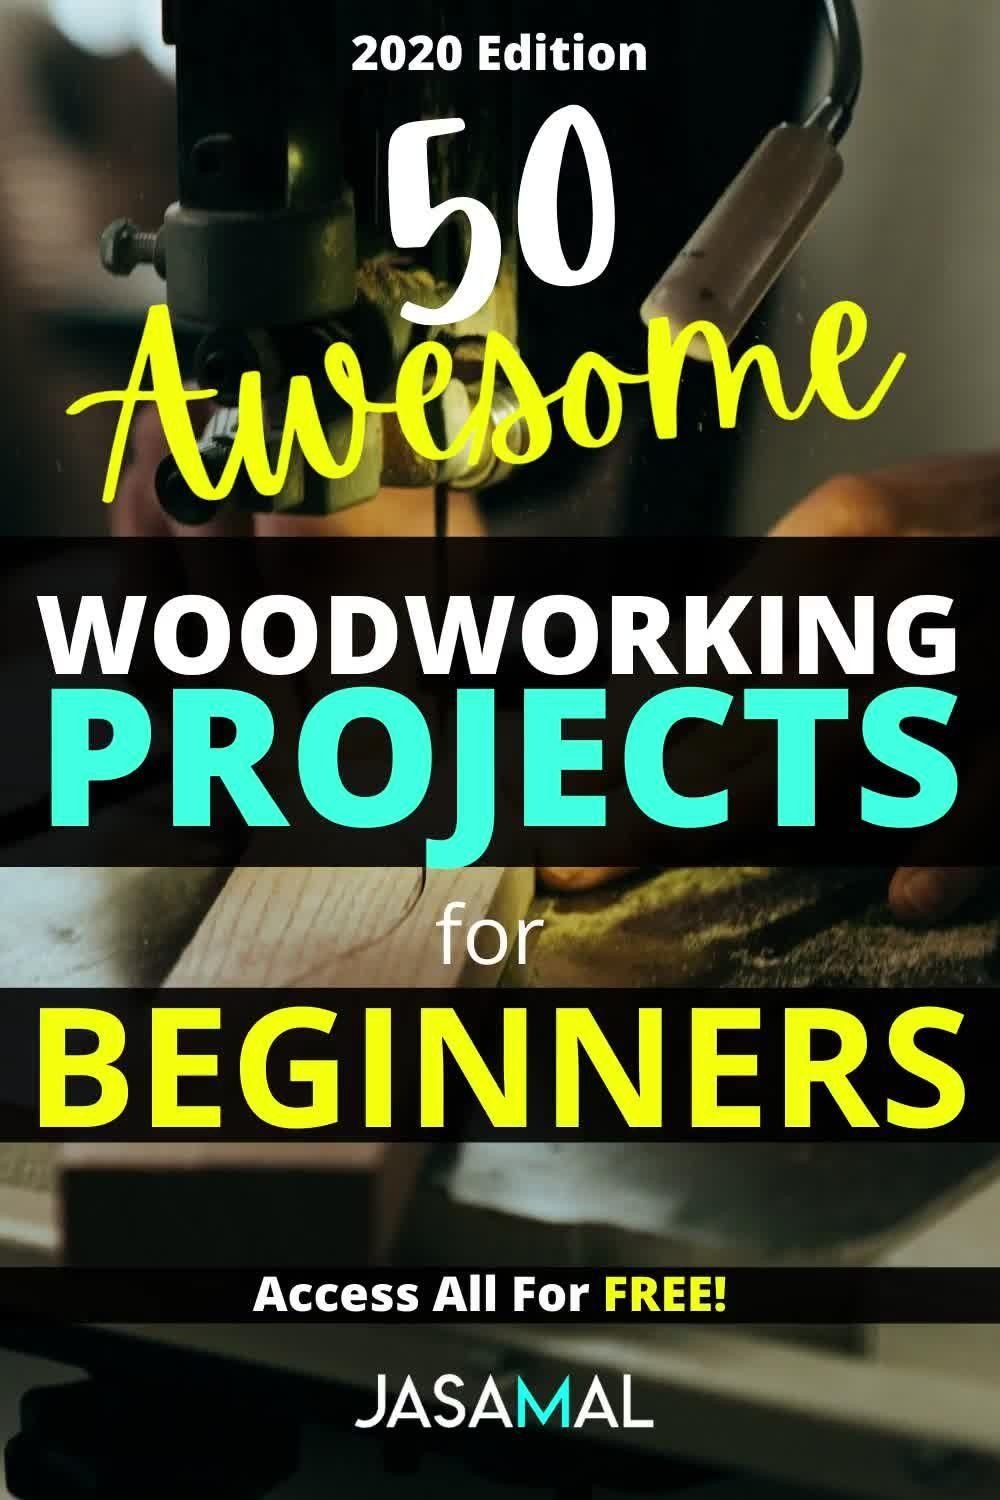 Looking for woodworking projects and plans? Grab 50 FREE detailed wood work plans perfect for beginners and intermediate DIYers. Includes bonus 440 page EBook too!#woodworkingprojects #woodworking #woodworkingplans #easywoodworkingprojects #woodworkingprojectsforbeginners